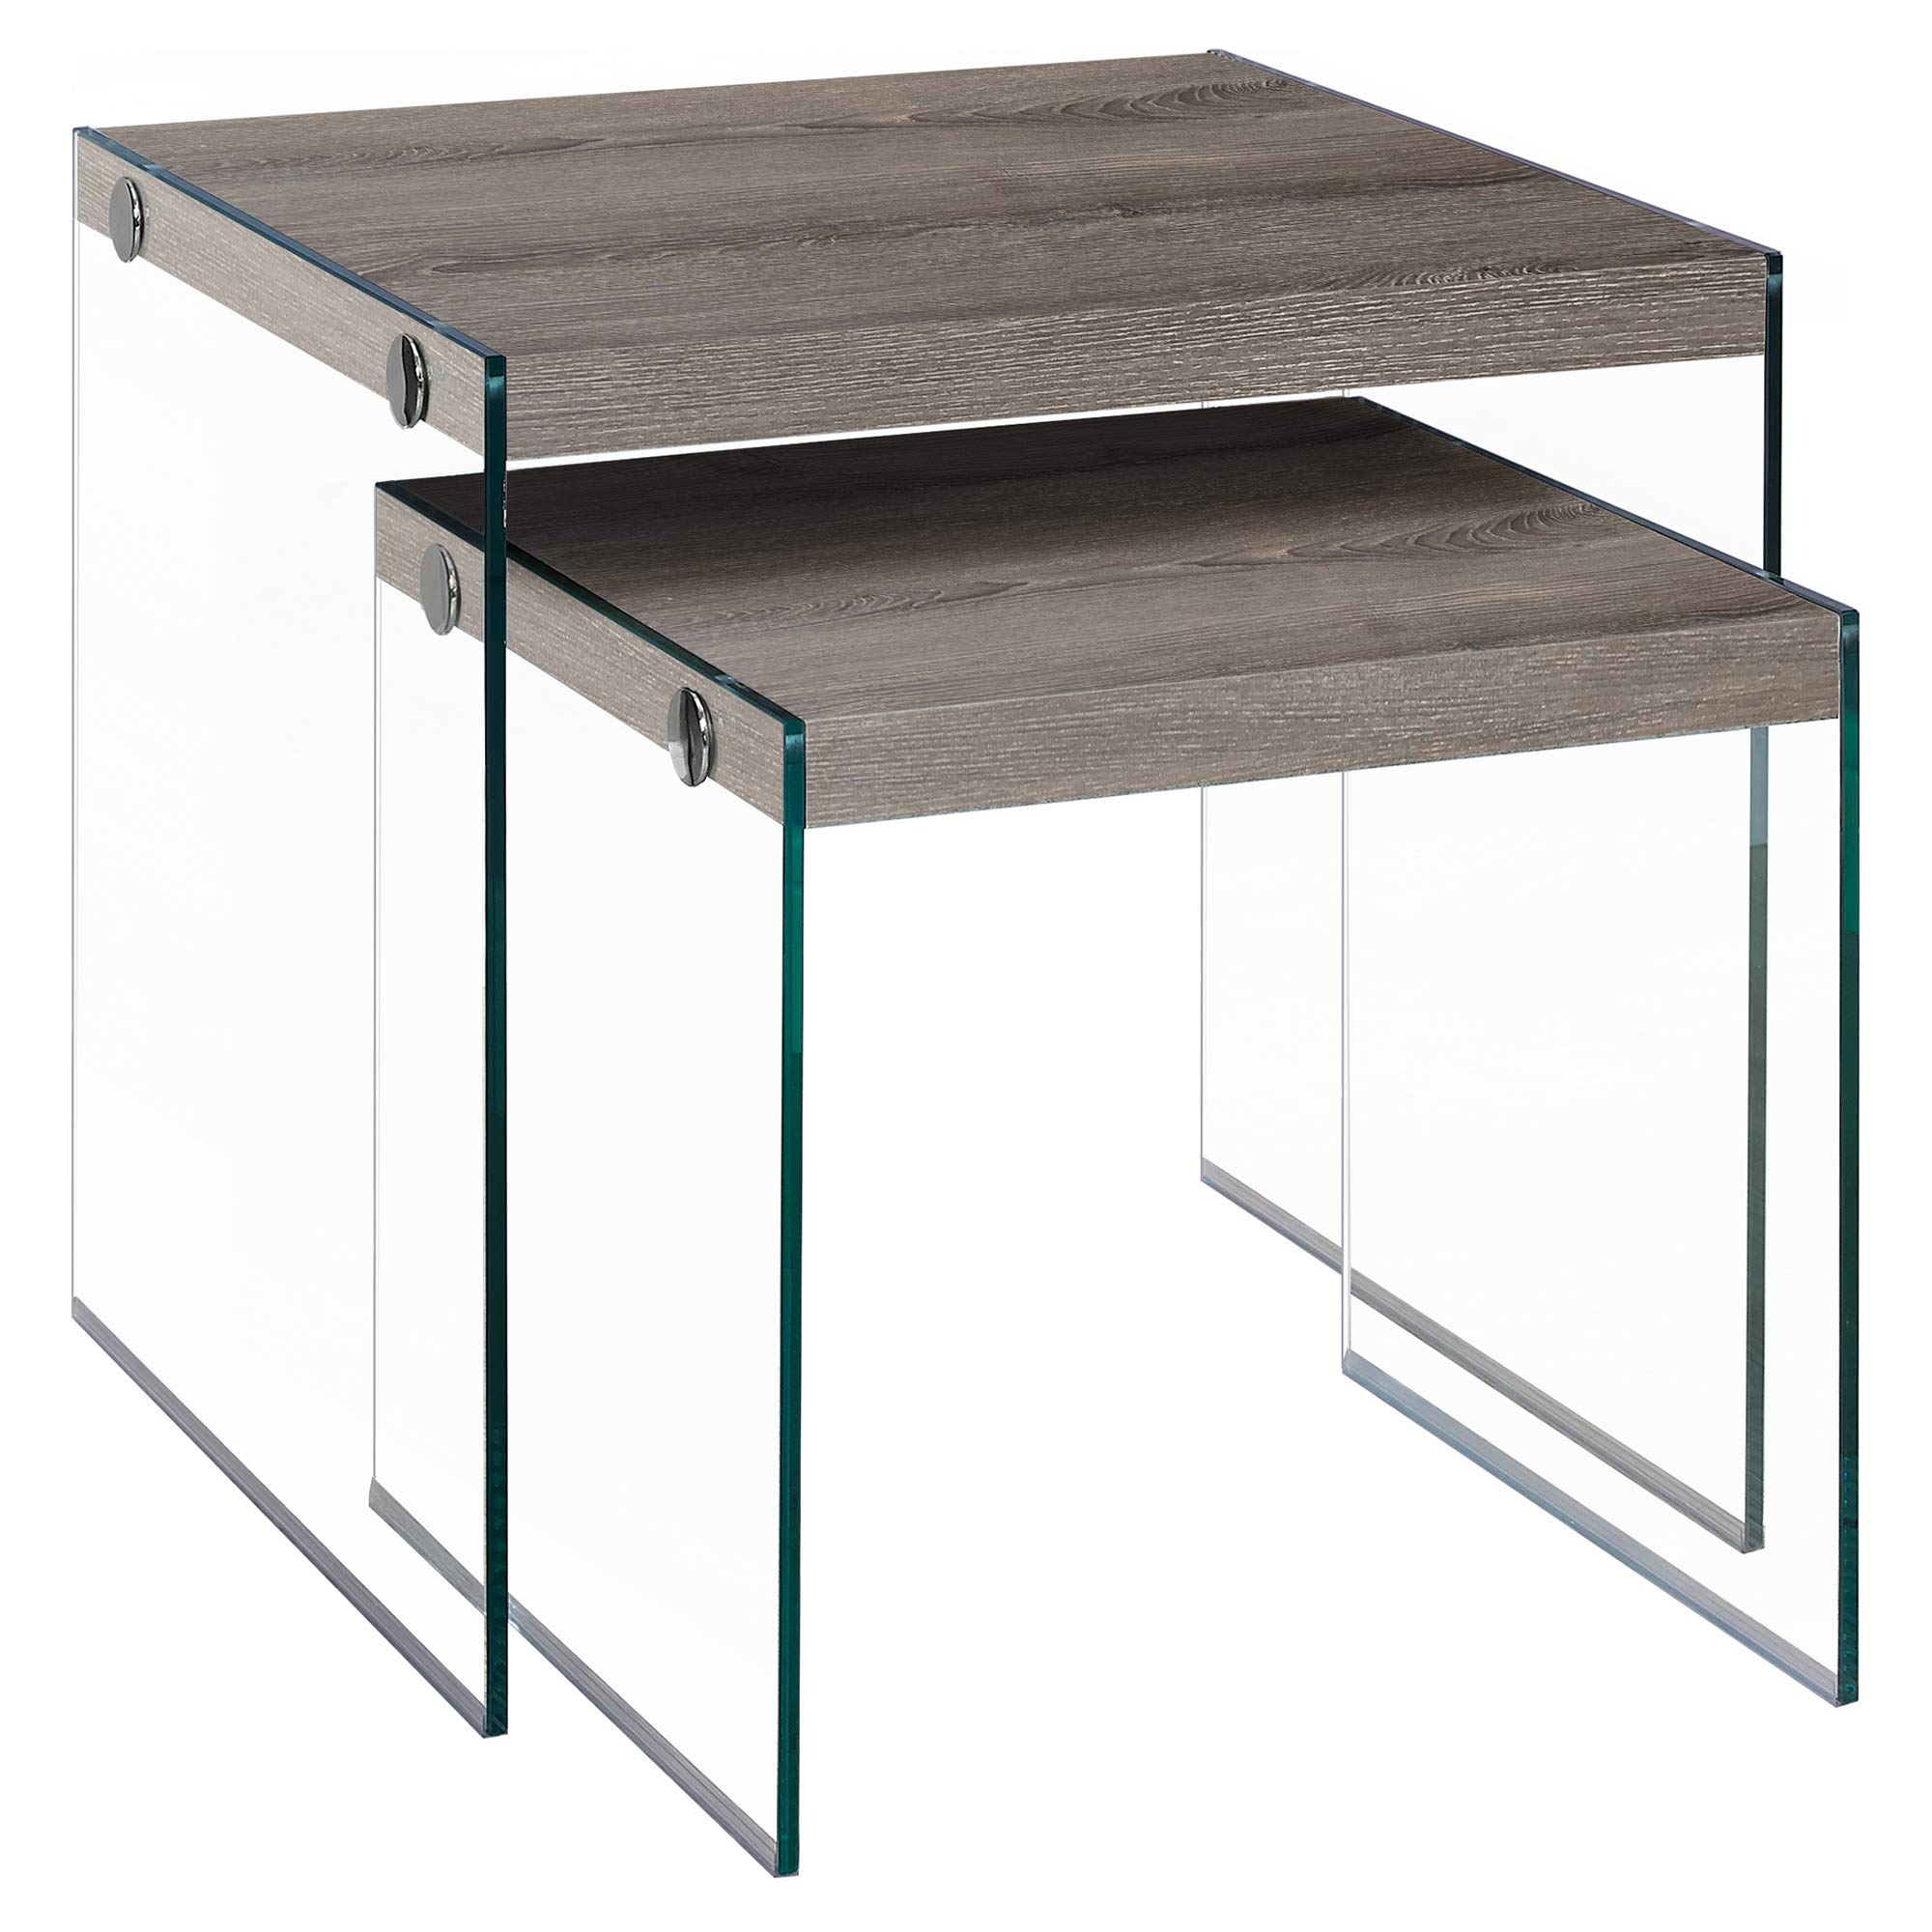 Monarch Specialties I 3053,Nesting Table, Tempered Glass, Dark Taupe by Monarch Specialties